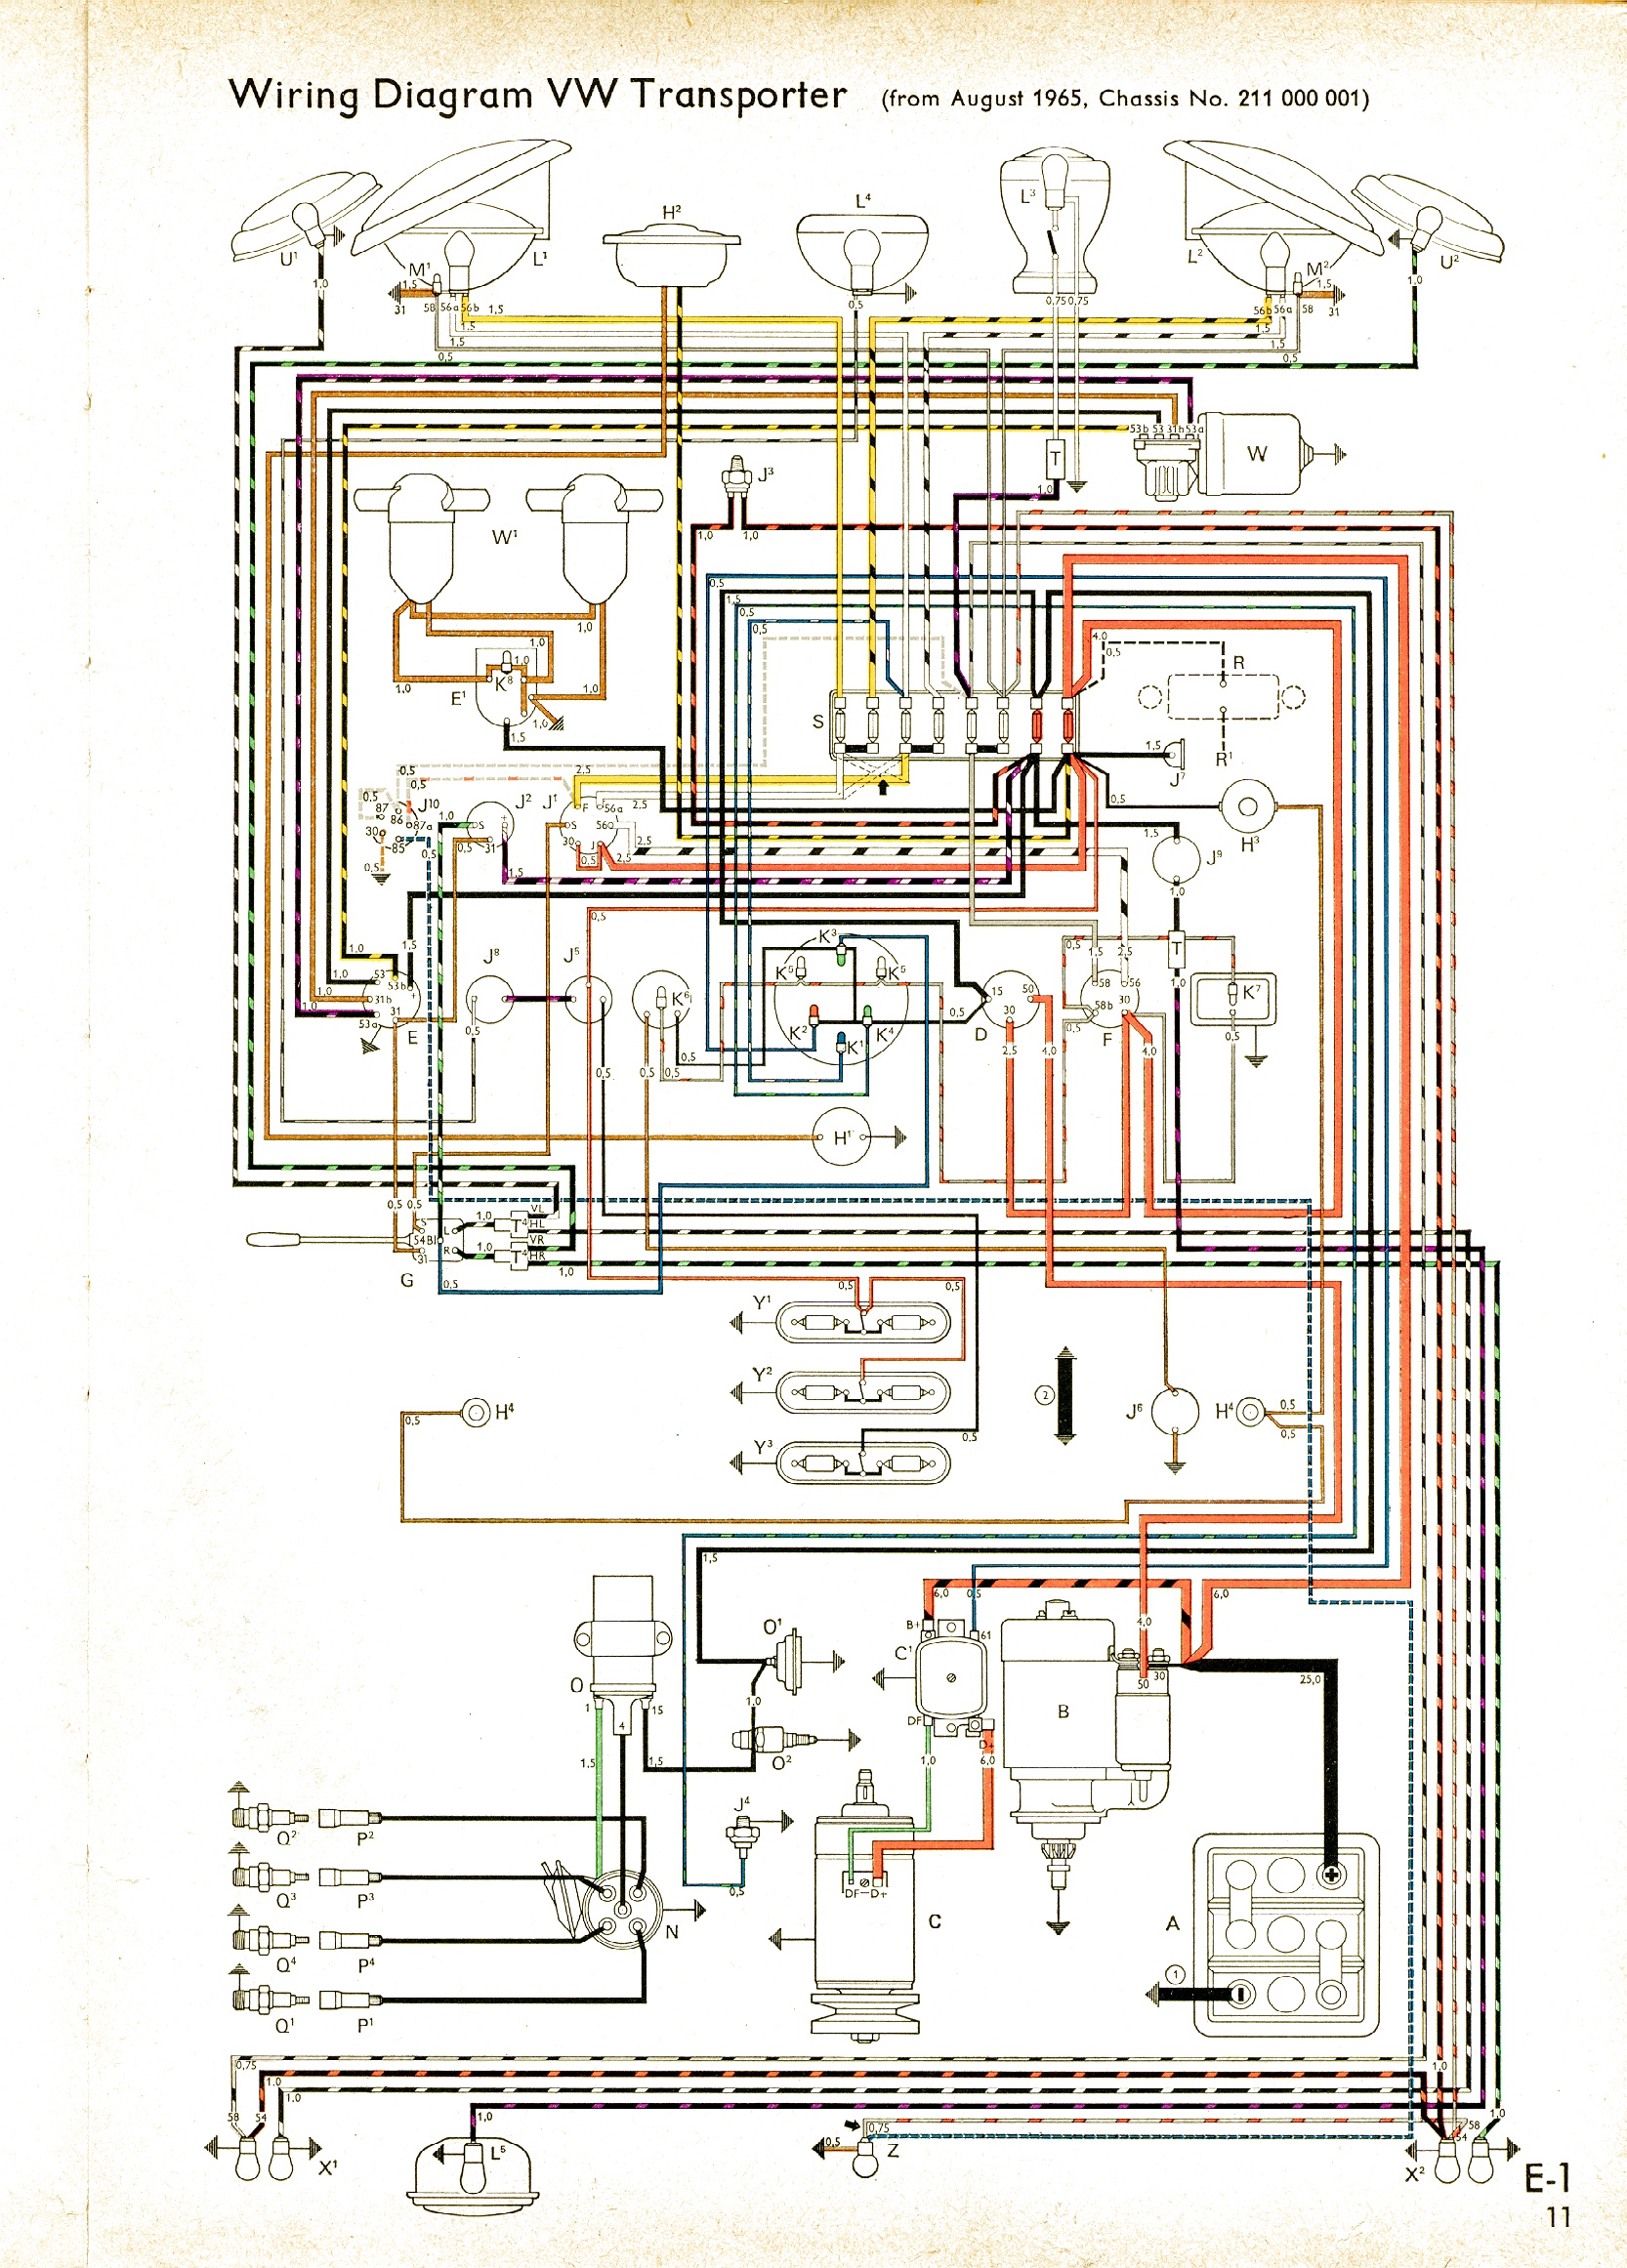 bus 65 bus wiring diagram vw wiring harness diagram \u2022 wiring diagrams j 1971 vw bus wiring diagram at aneh.co